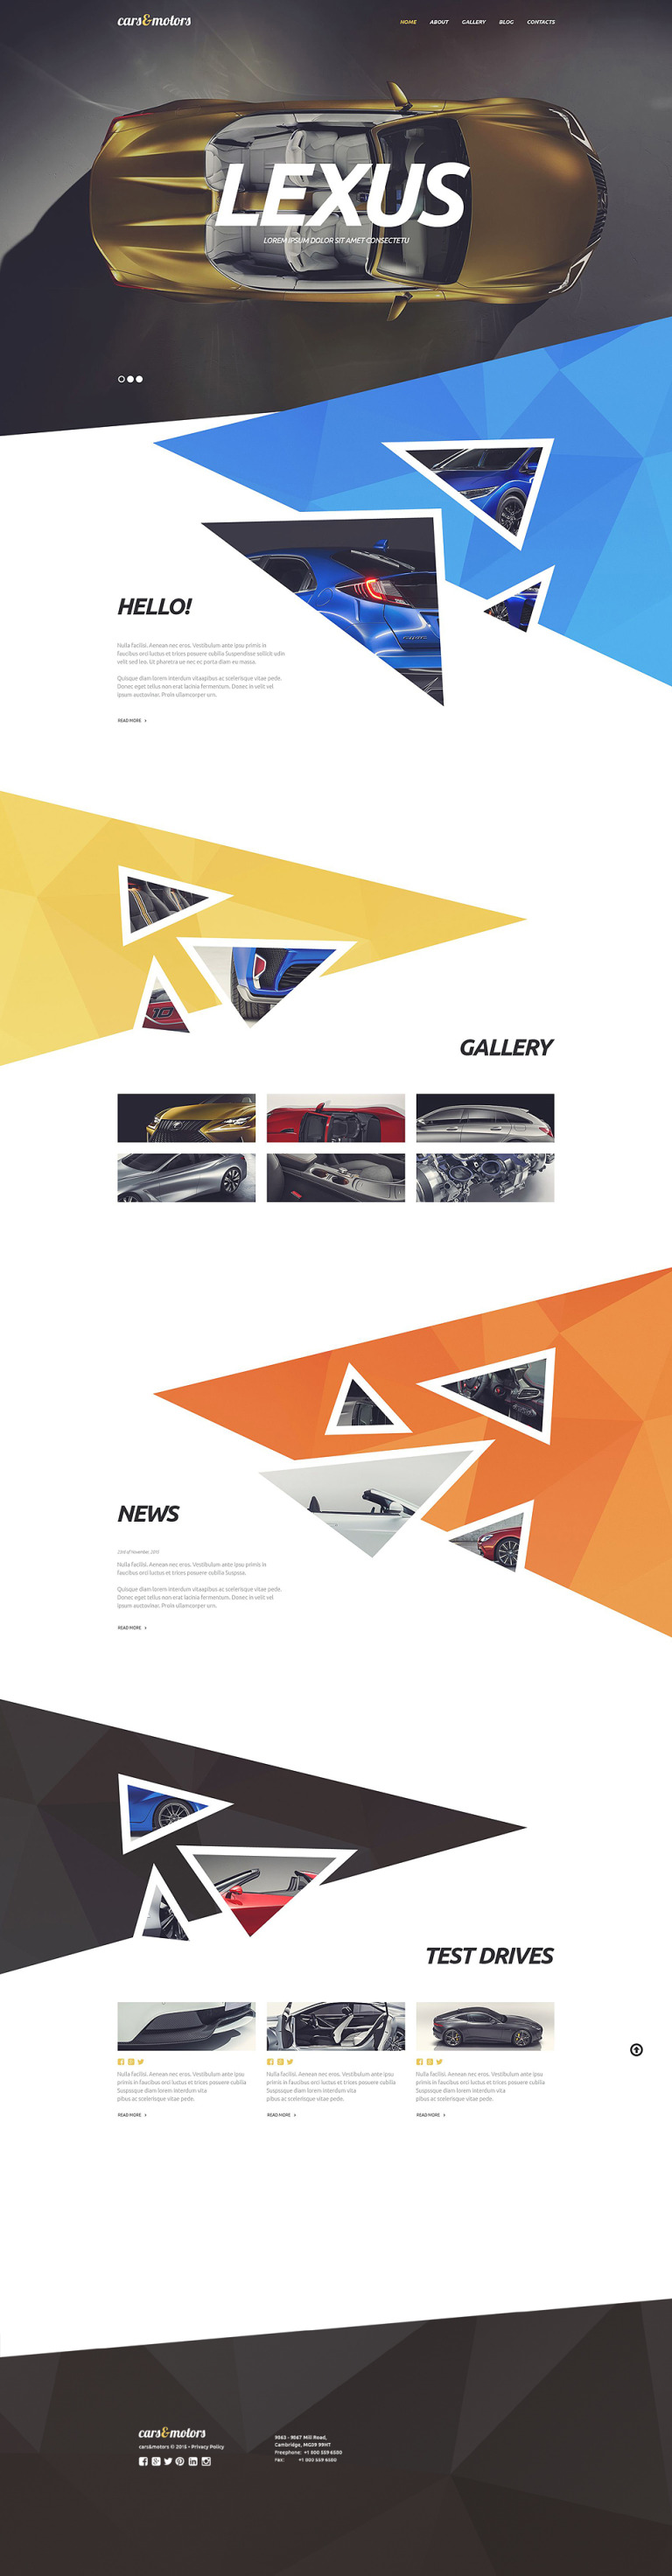 Car Distribution WordPress Theme New Screenshots BIG